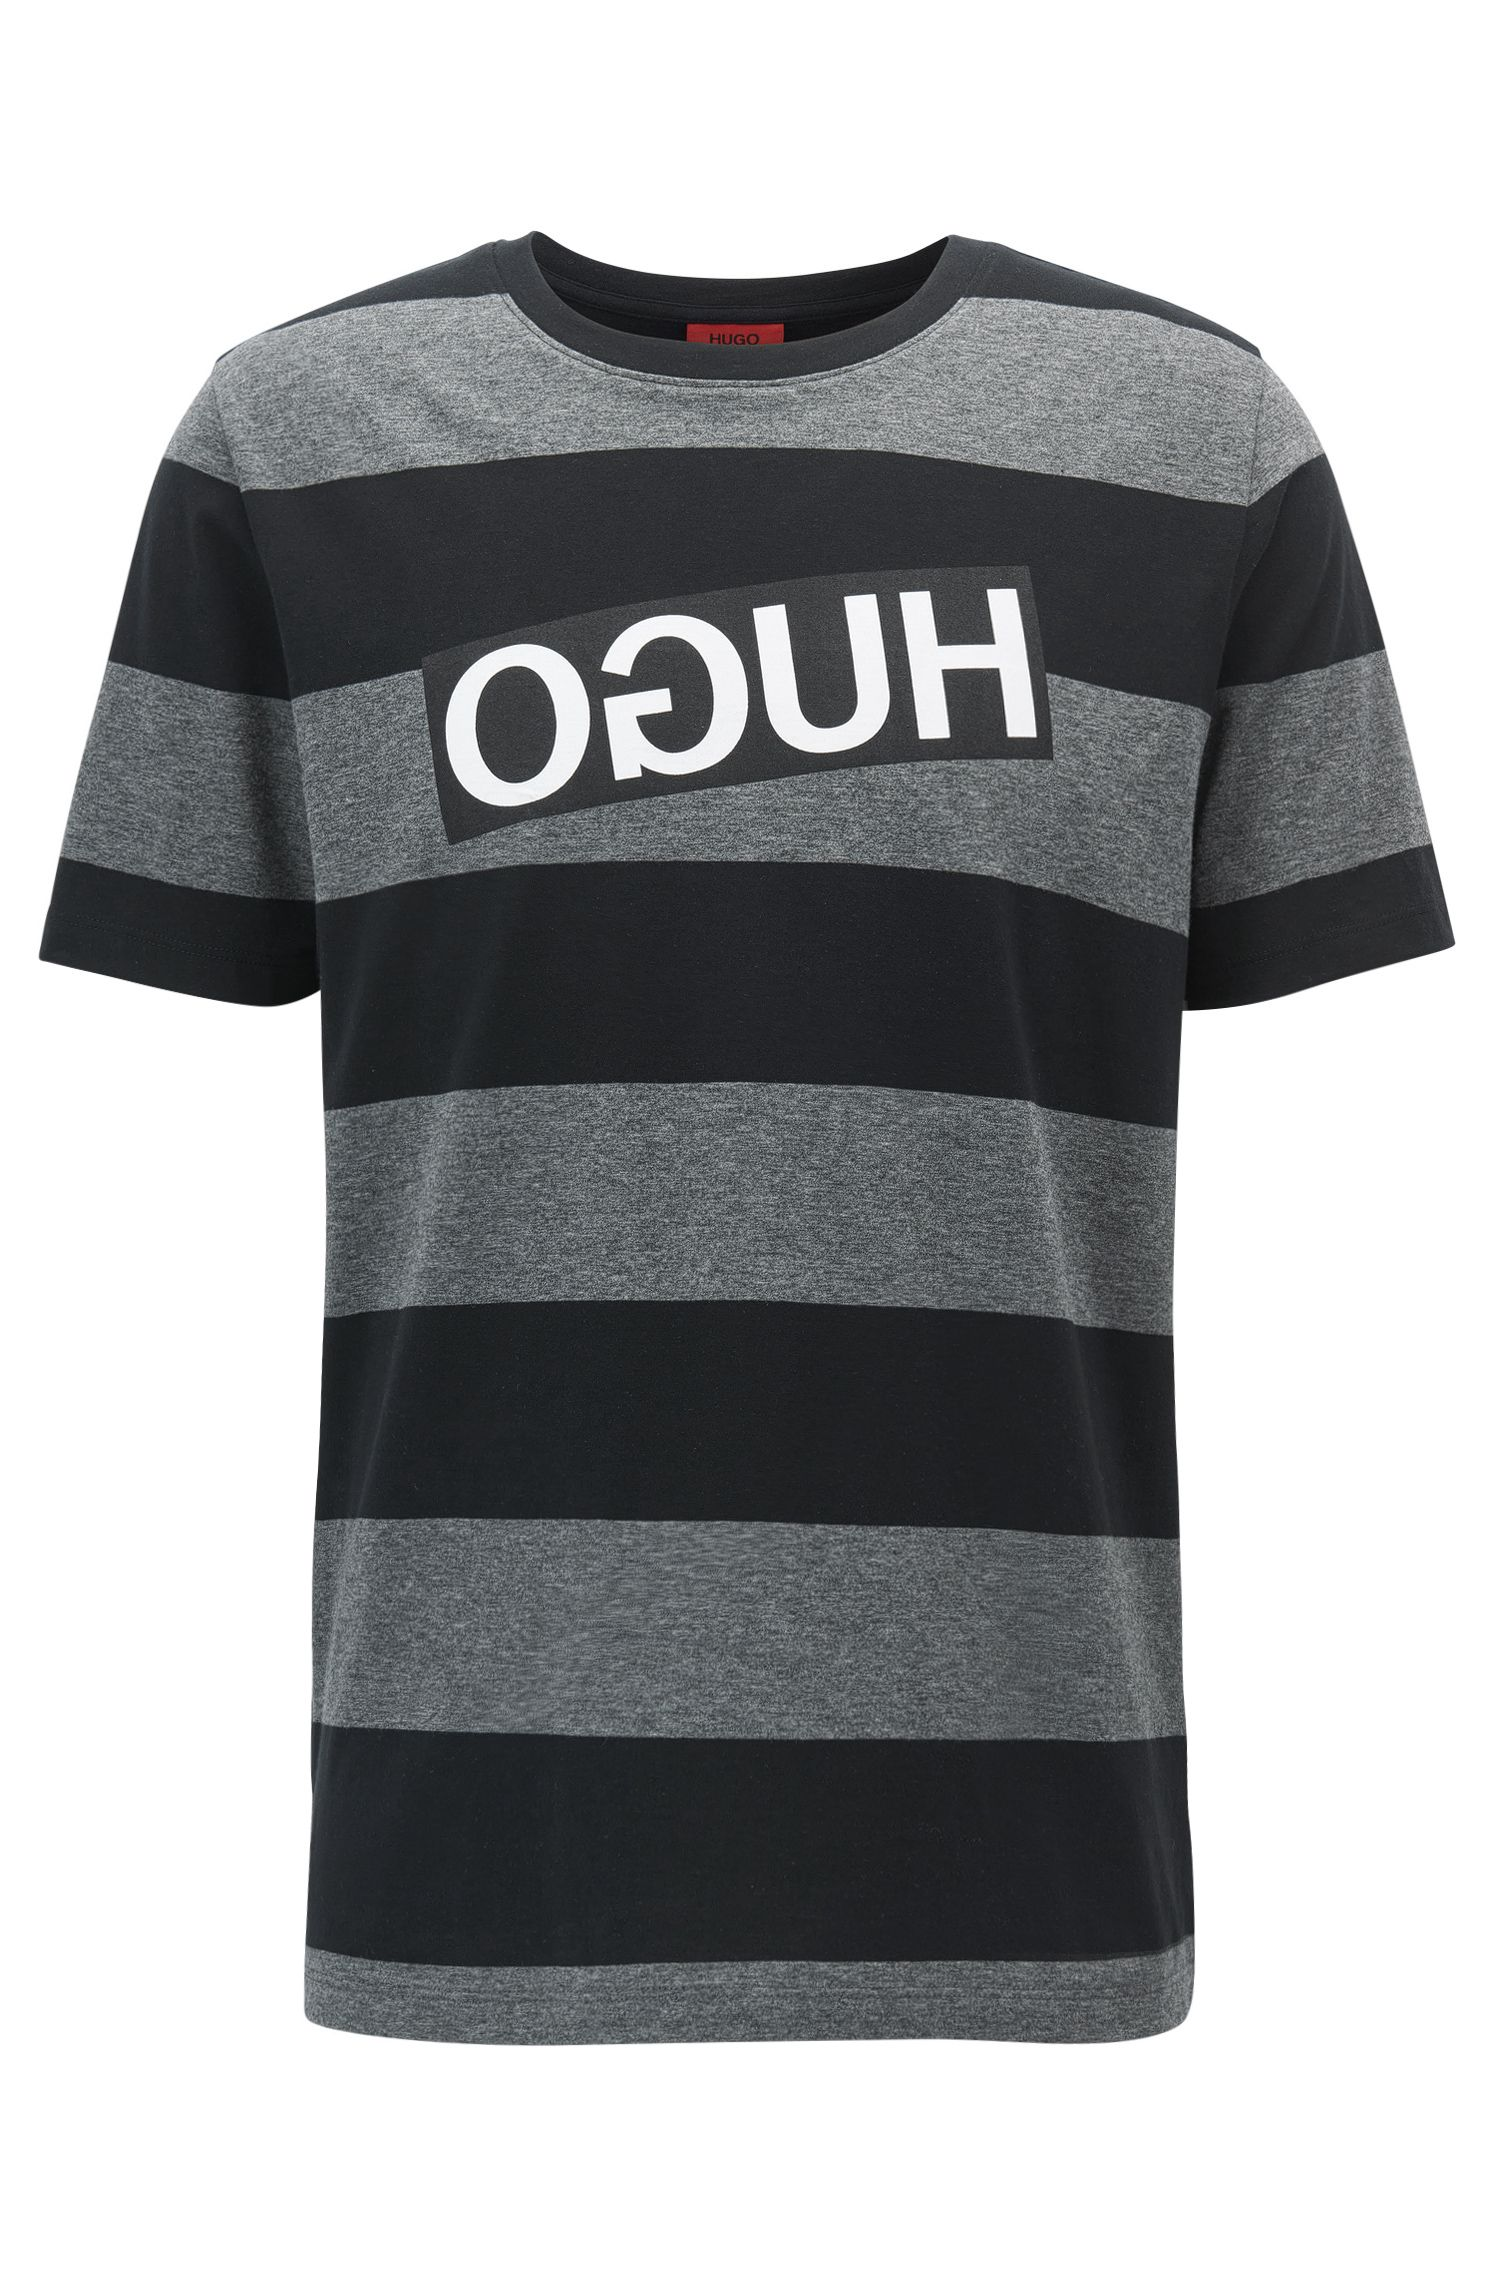 Relaxed-fit striped pima cotton T-shirt with reverse logo